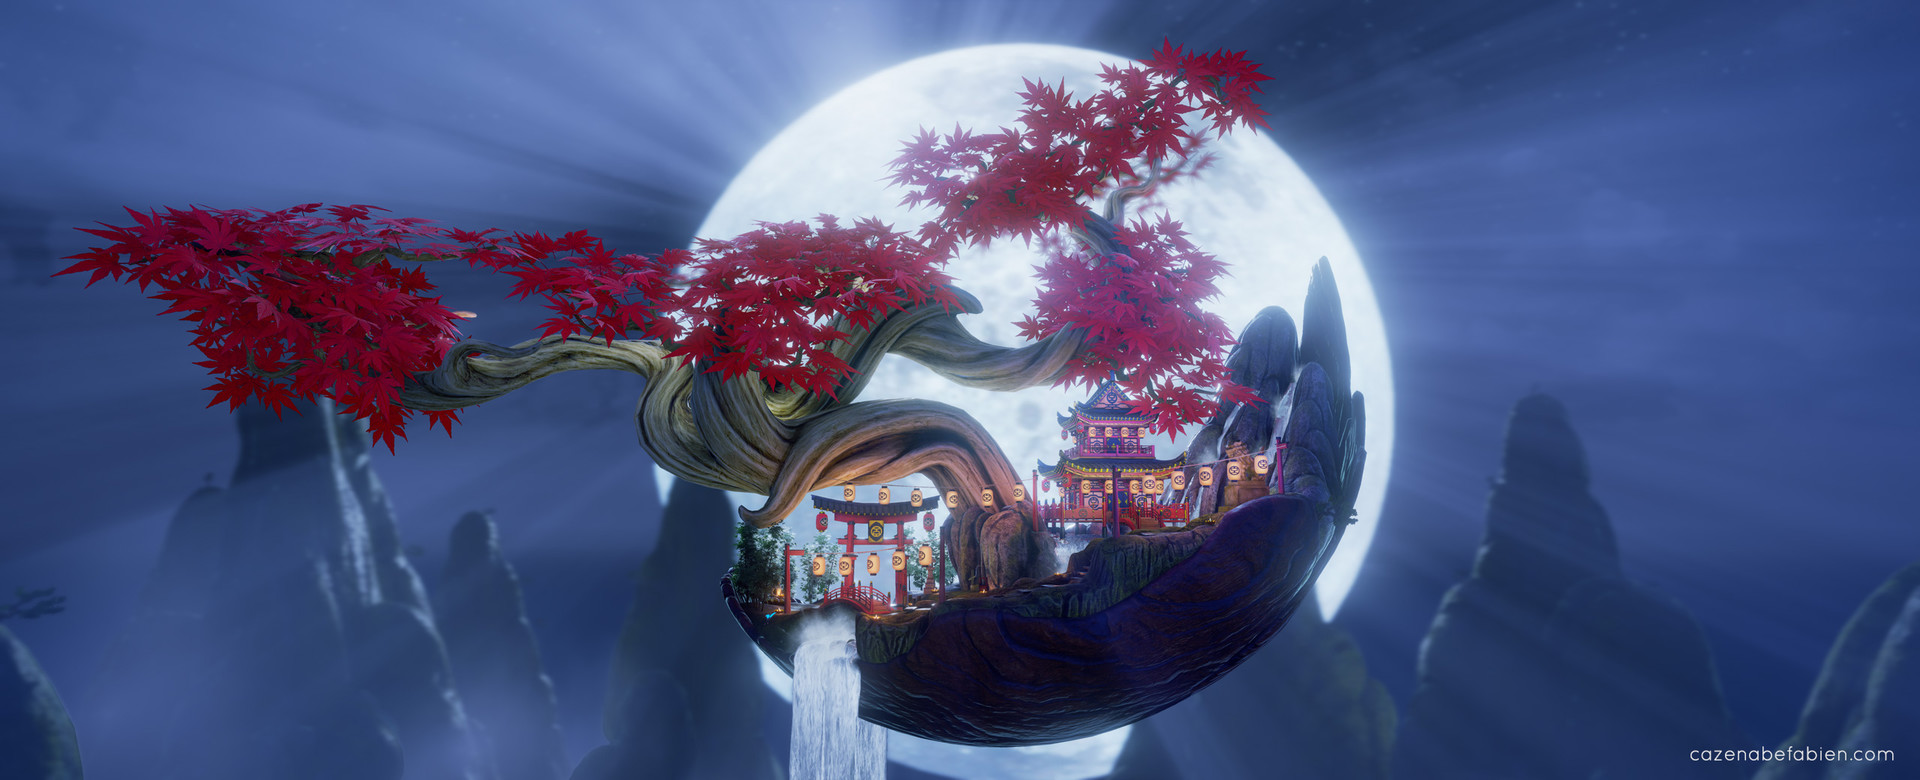 Fabien cazenabe lost japanese temple 3d environment art design unreal engine 01